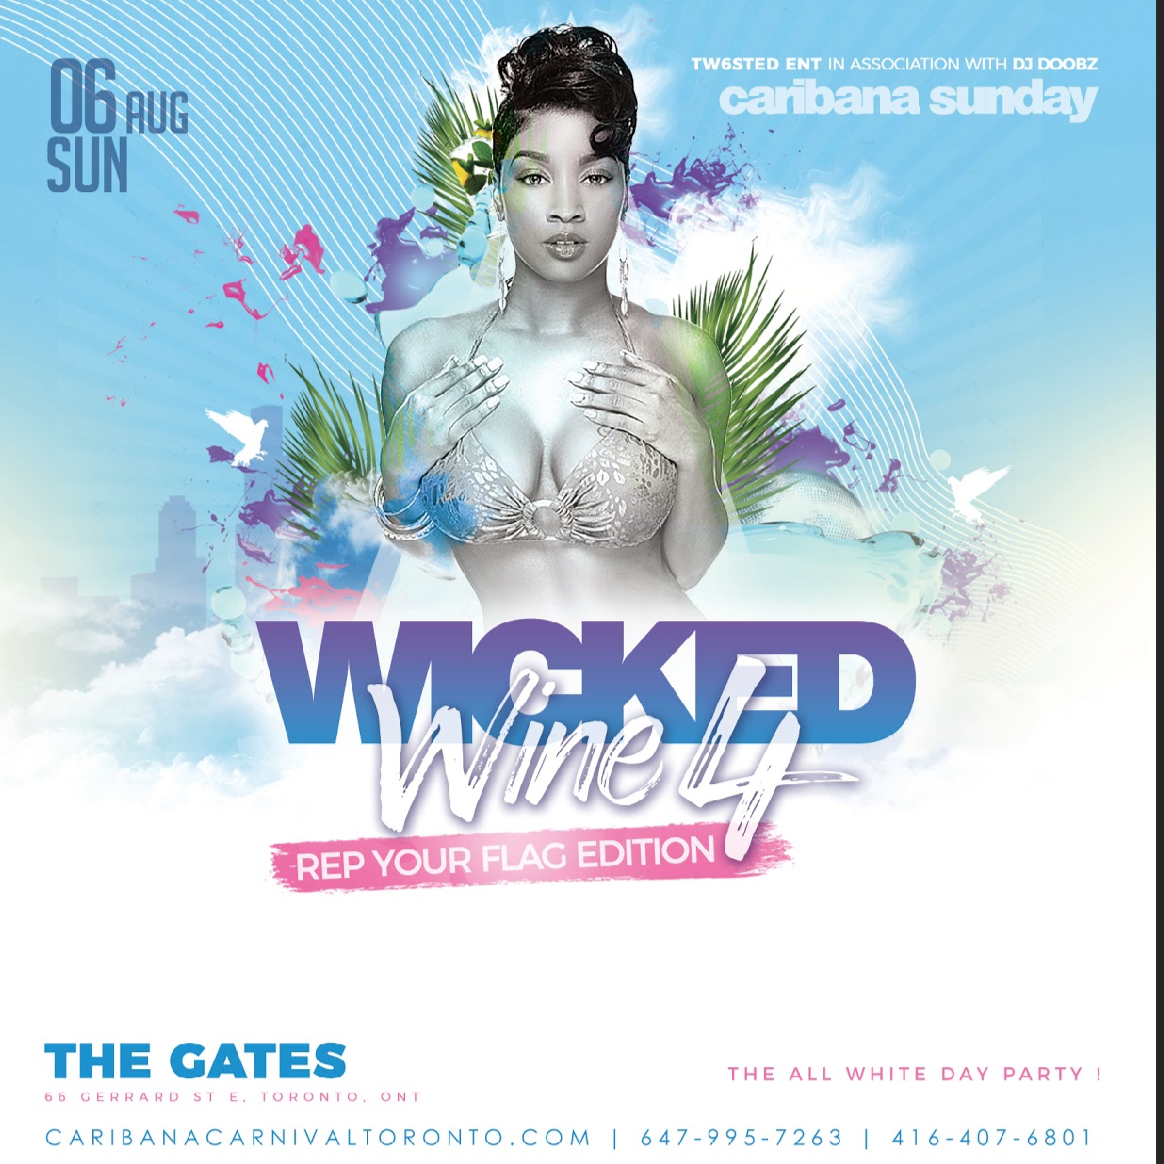 Wicked Wine 4: Rep Your Flag Edition  - Caribana Sunday